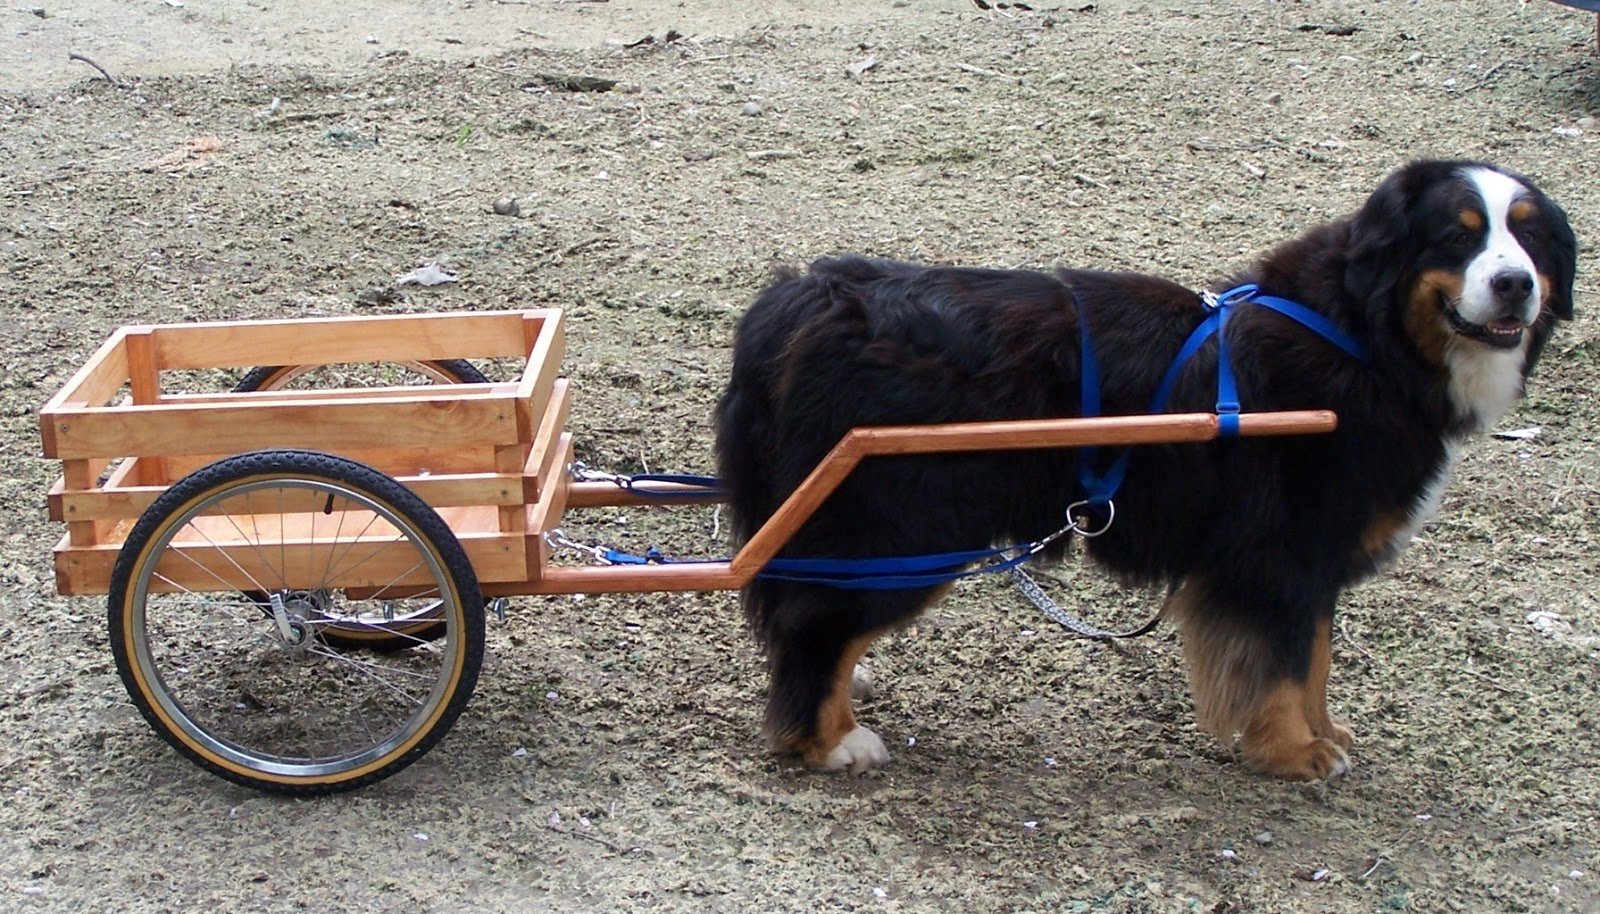 How To Make A Dog Cart For Dog To Pull